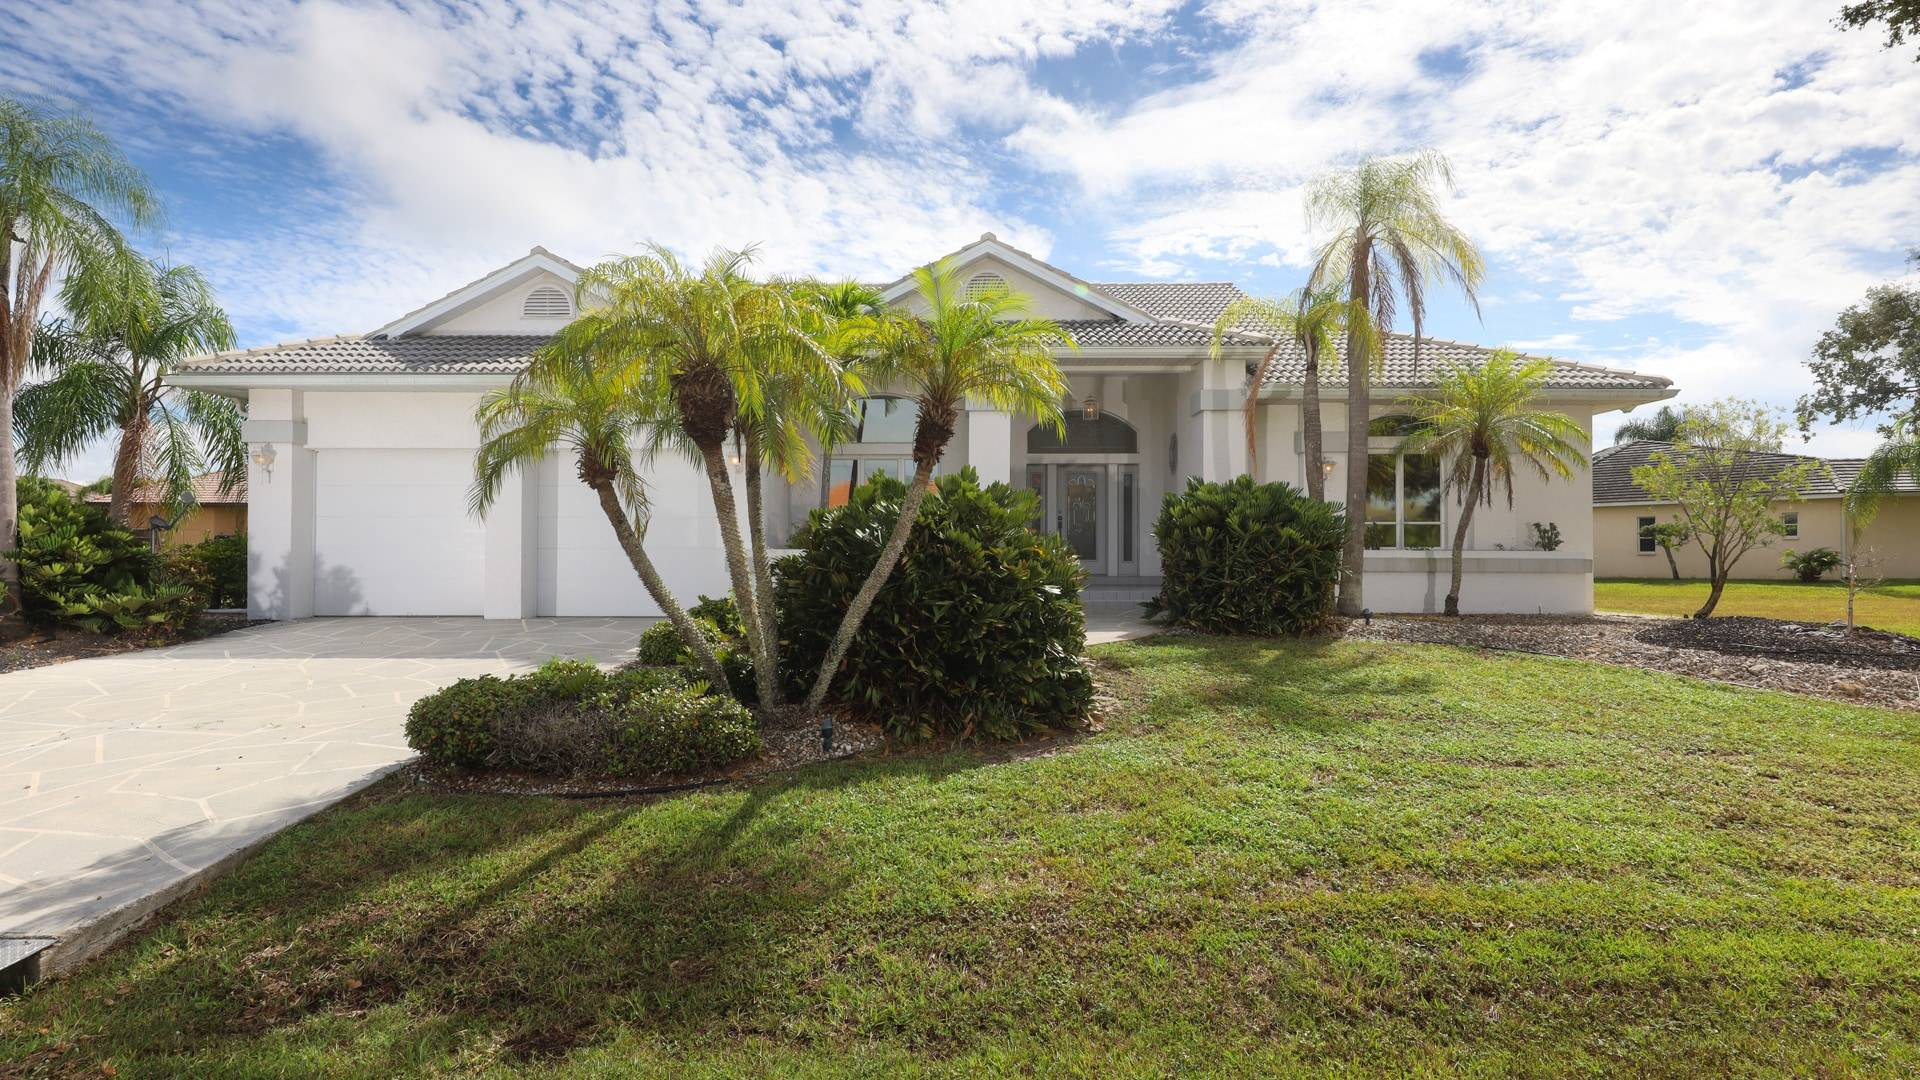 3836 Paola Dr-212759